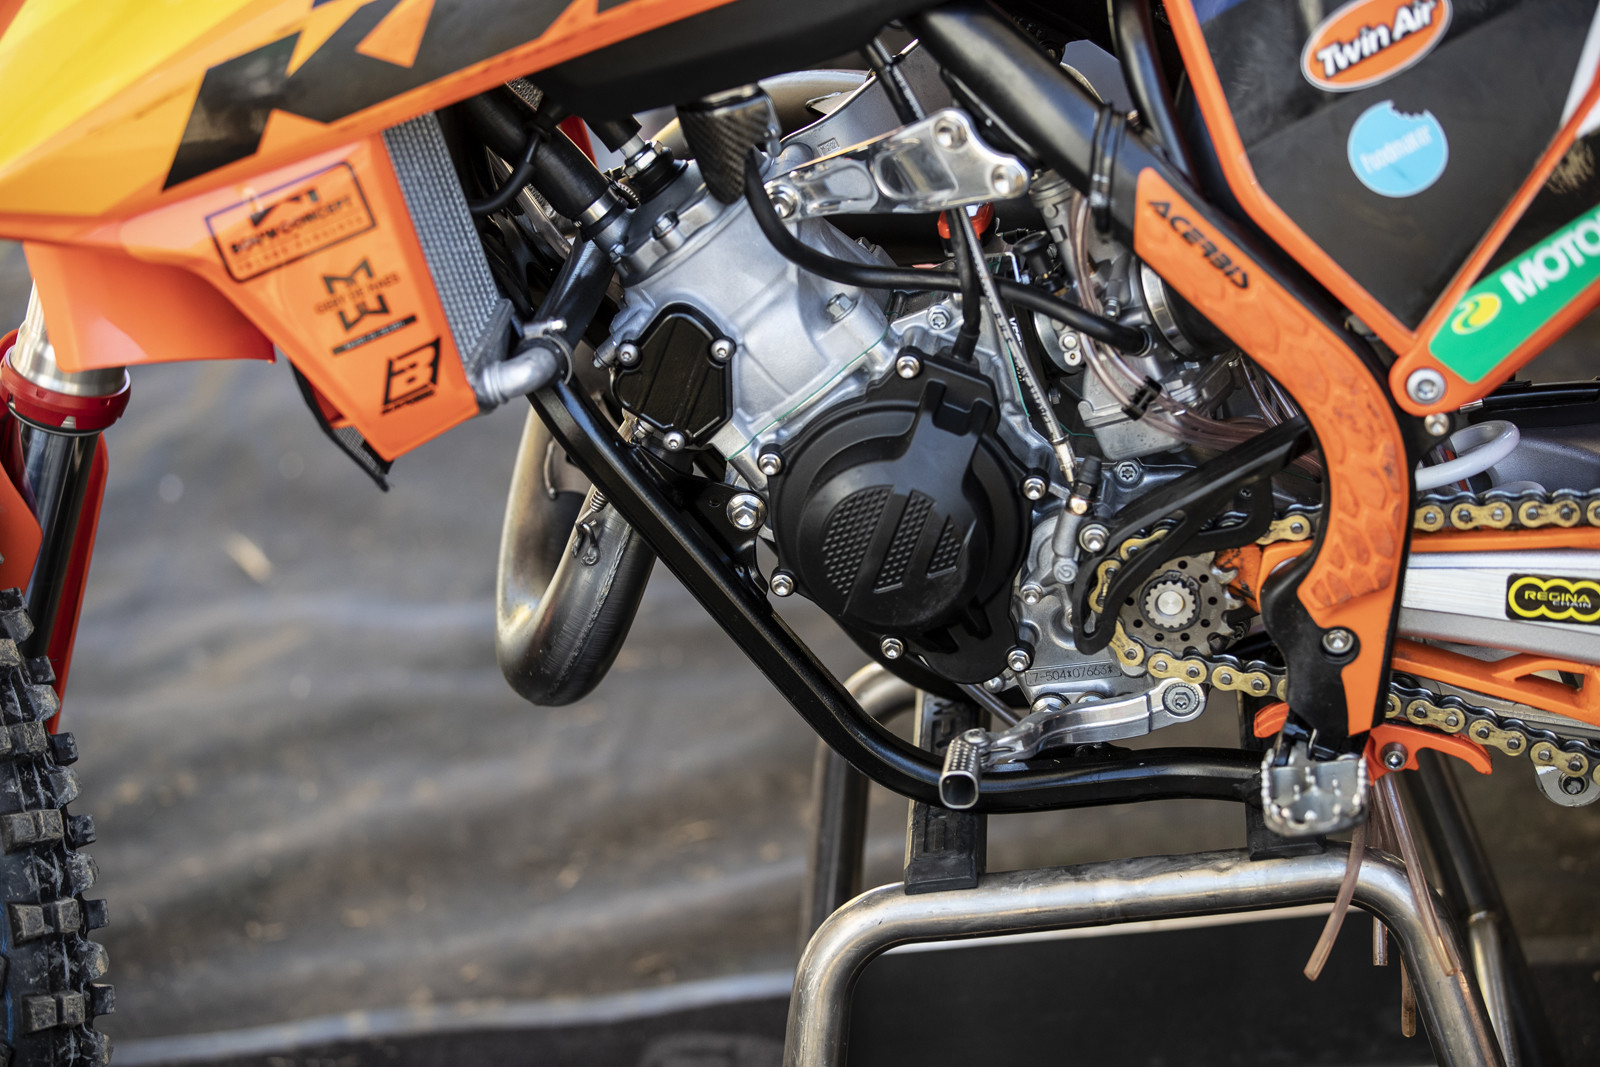 On the other side, you can see another polished engine hanger and a carbon fiber guard for the fuel petcock. Also, the team runs the fuel line behind the clutch line.